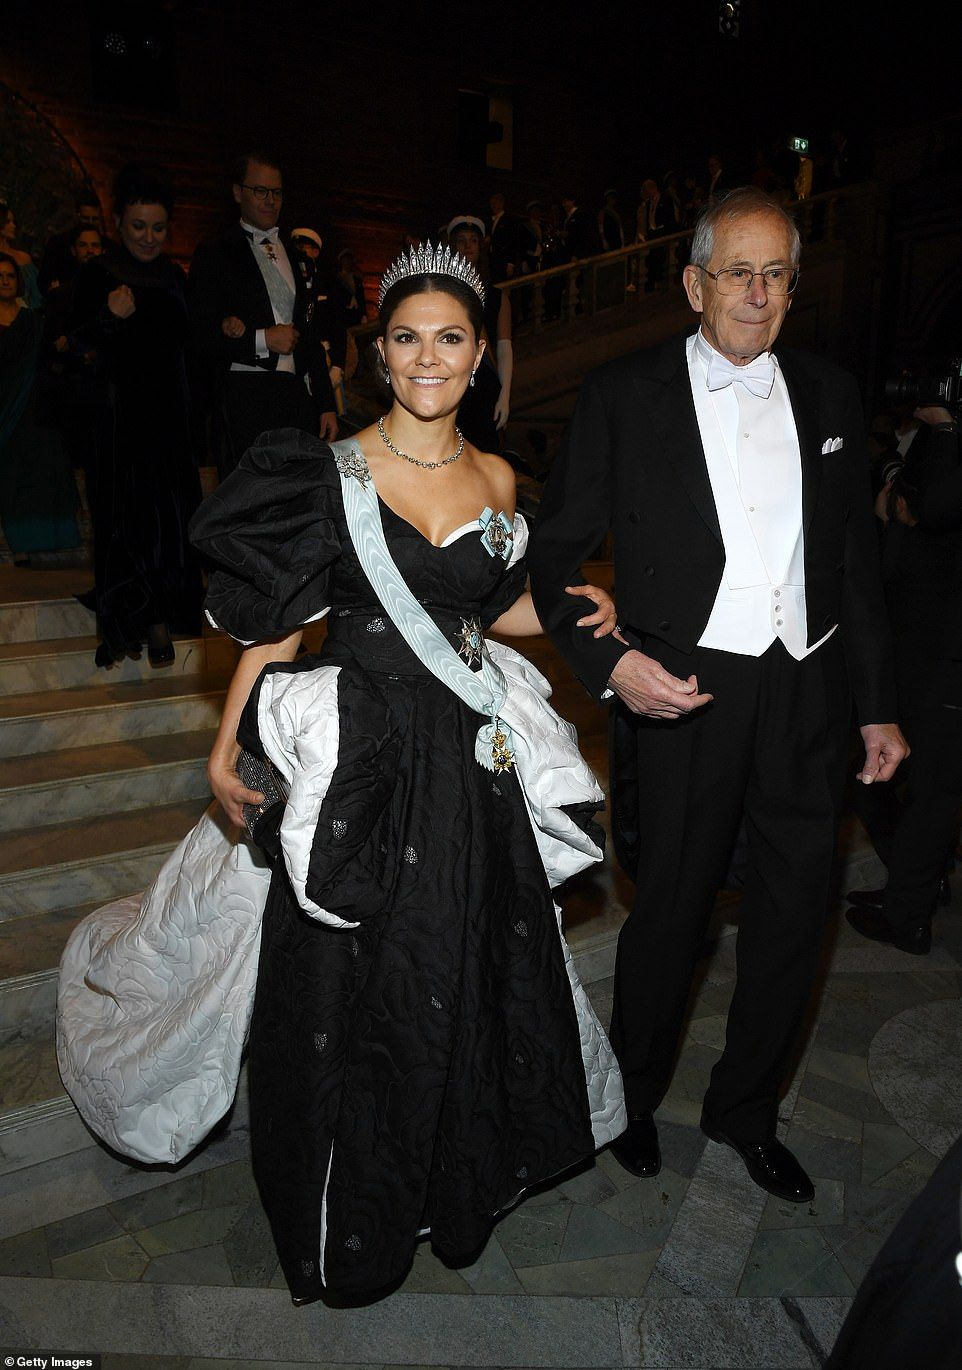 Swedish Royals Wow In Elegant Ball Gowns At The Nobel Prize